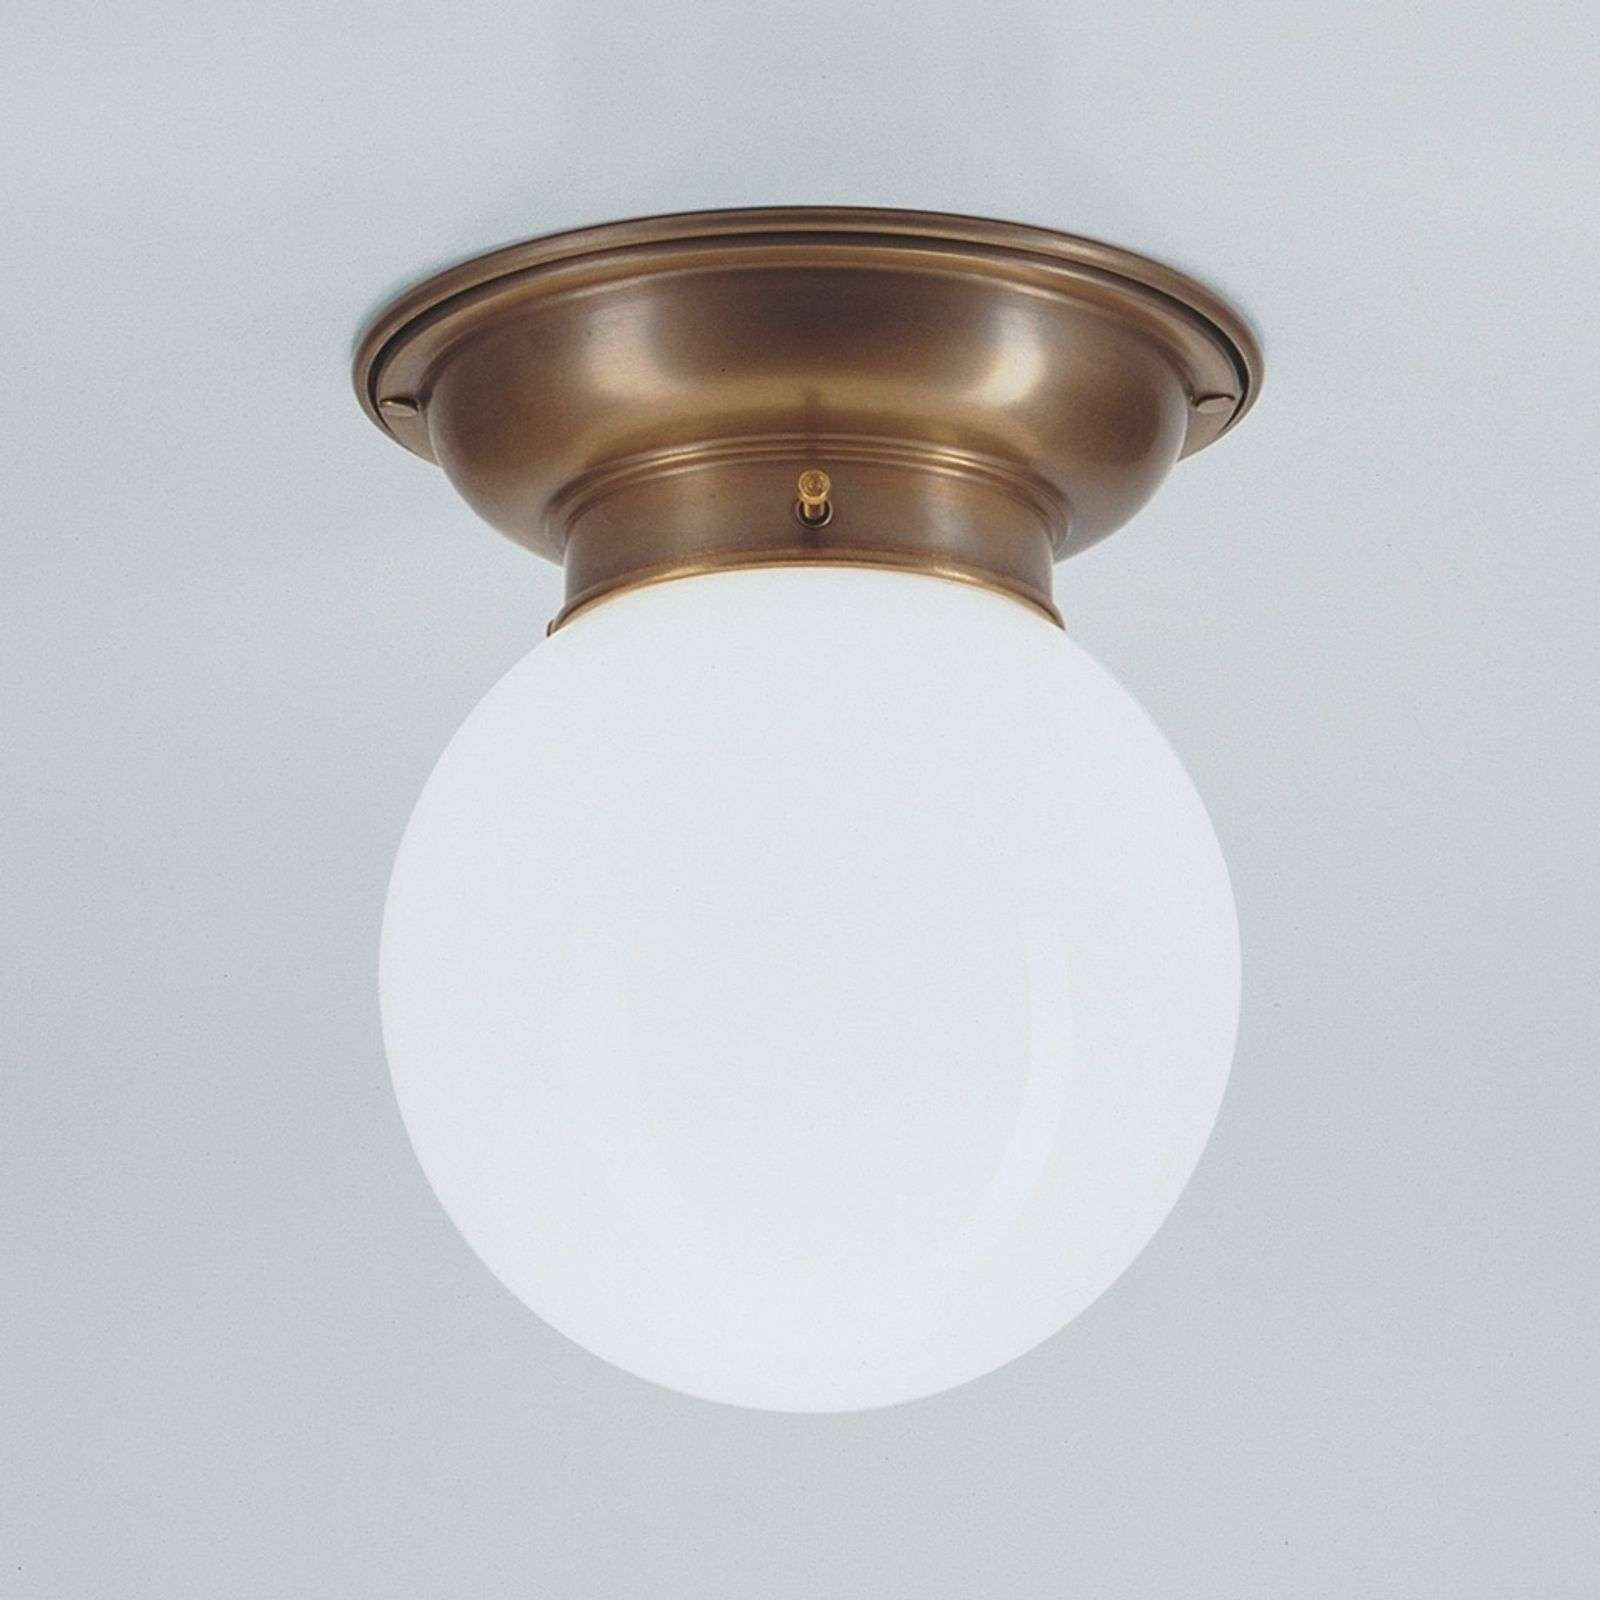 Plafondlamp Jim - made in Germany